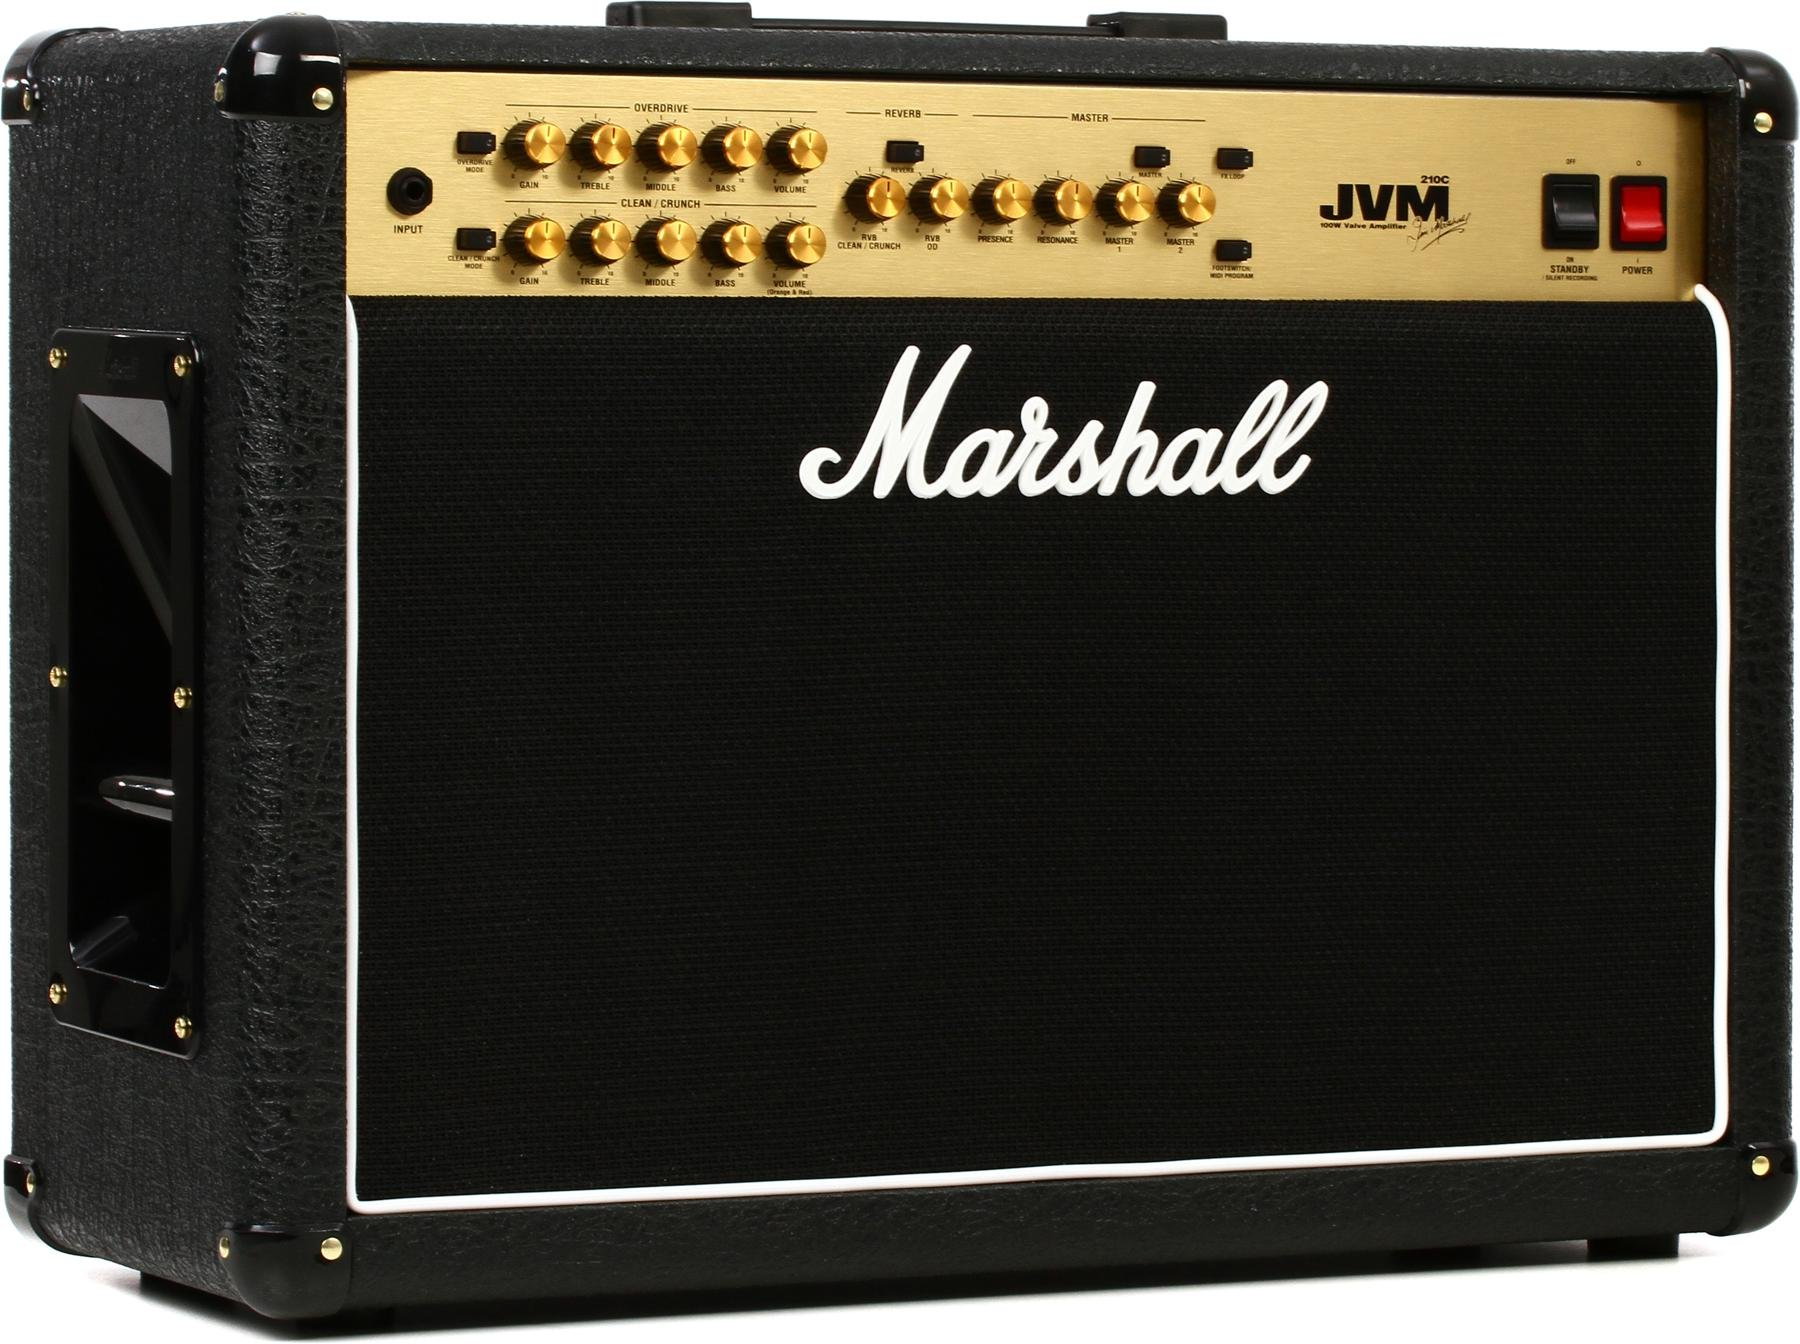 Marshall Jvm210c 100 Watt 2x12 2 Channel Tube Combo Amp Sweetwater Guitar Or Music Amplifier Home Stereo Powered Subwoofer Image 1